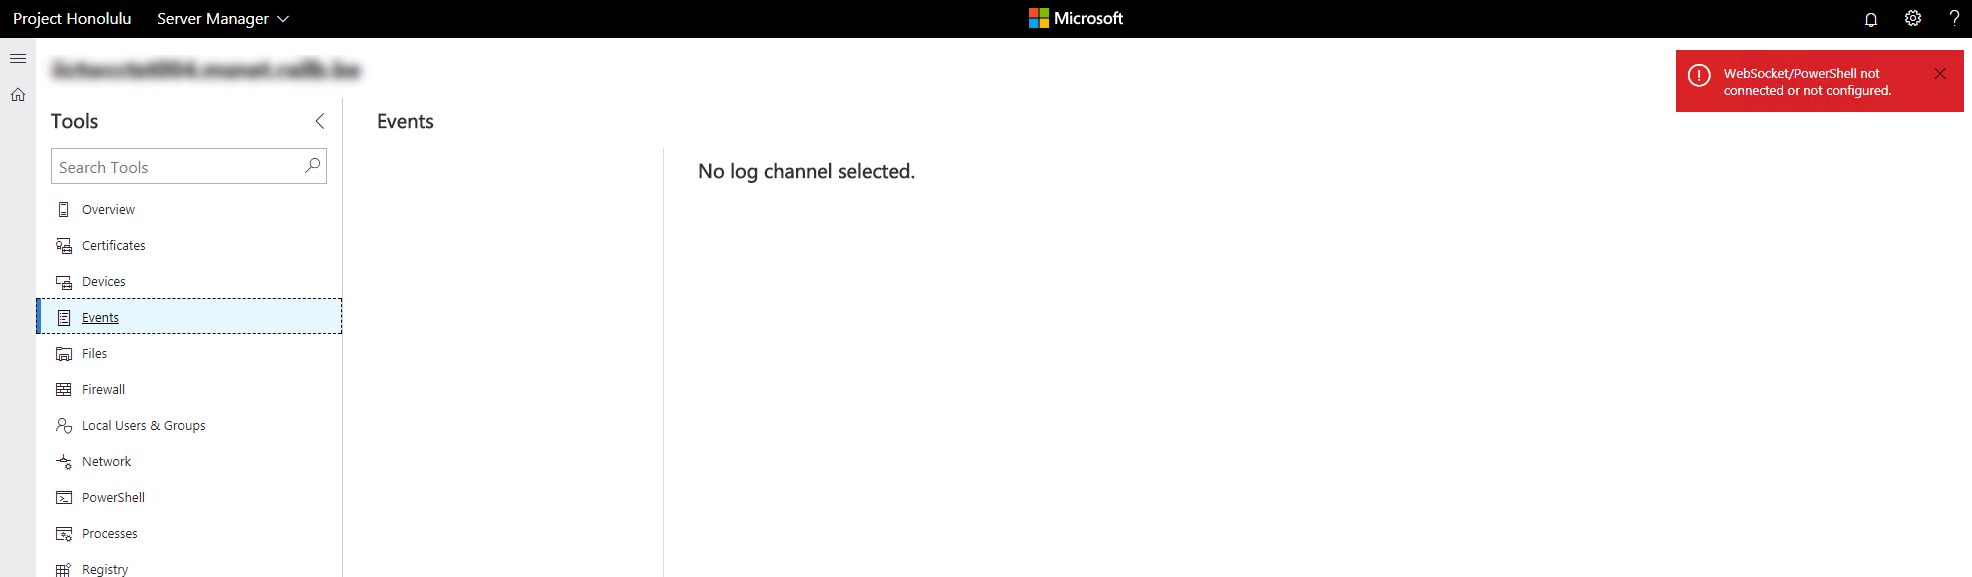 Error with tool Events : no log channel selected (v1712 b1 1 1712